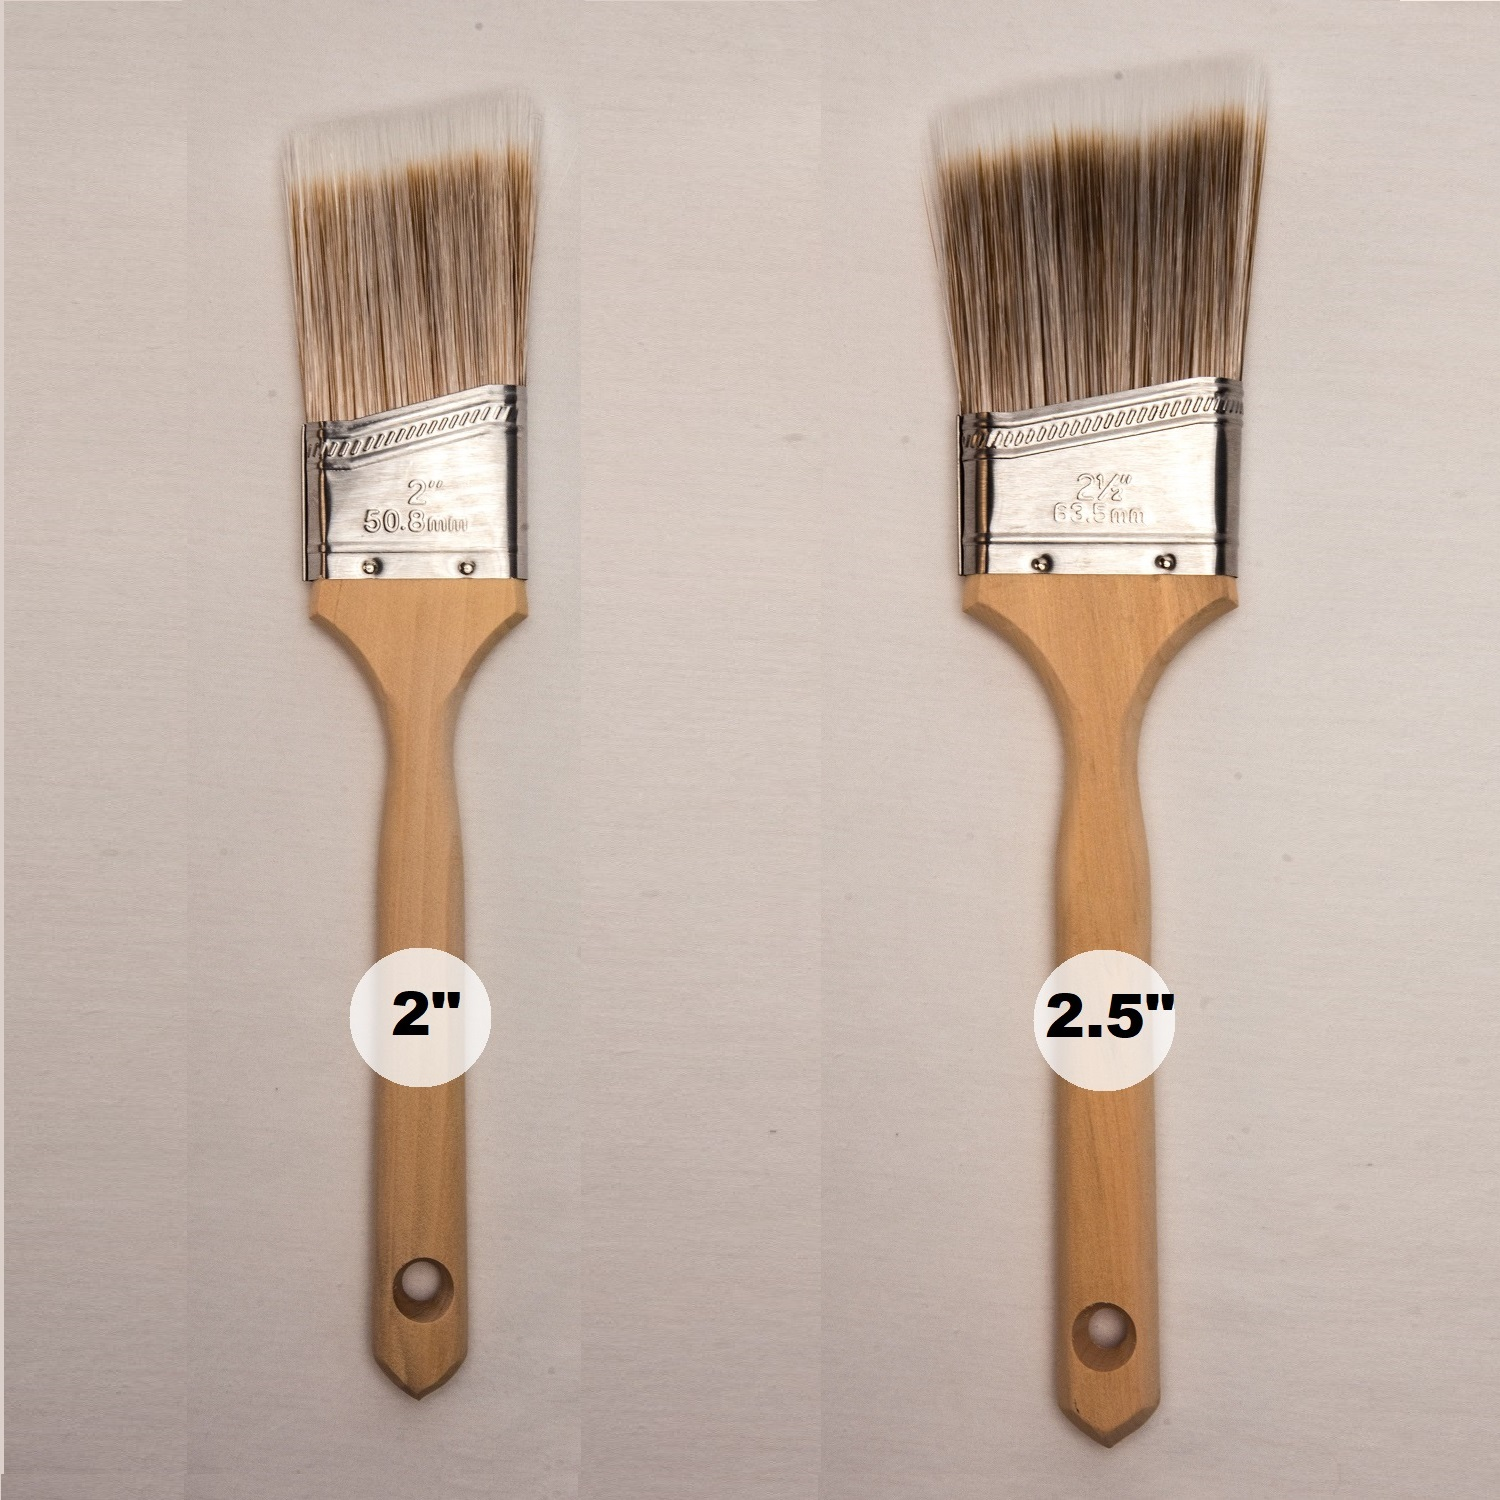 Gbs Angle Sash Polyester Paint Brush Set 2 2 5 Inches Multi Usage For Painters Professionals Homeowners Diy Durable Top Quality Long